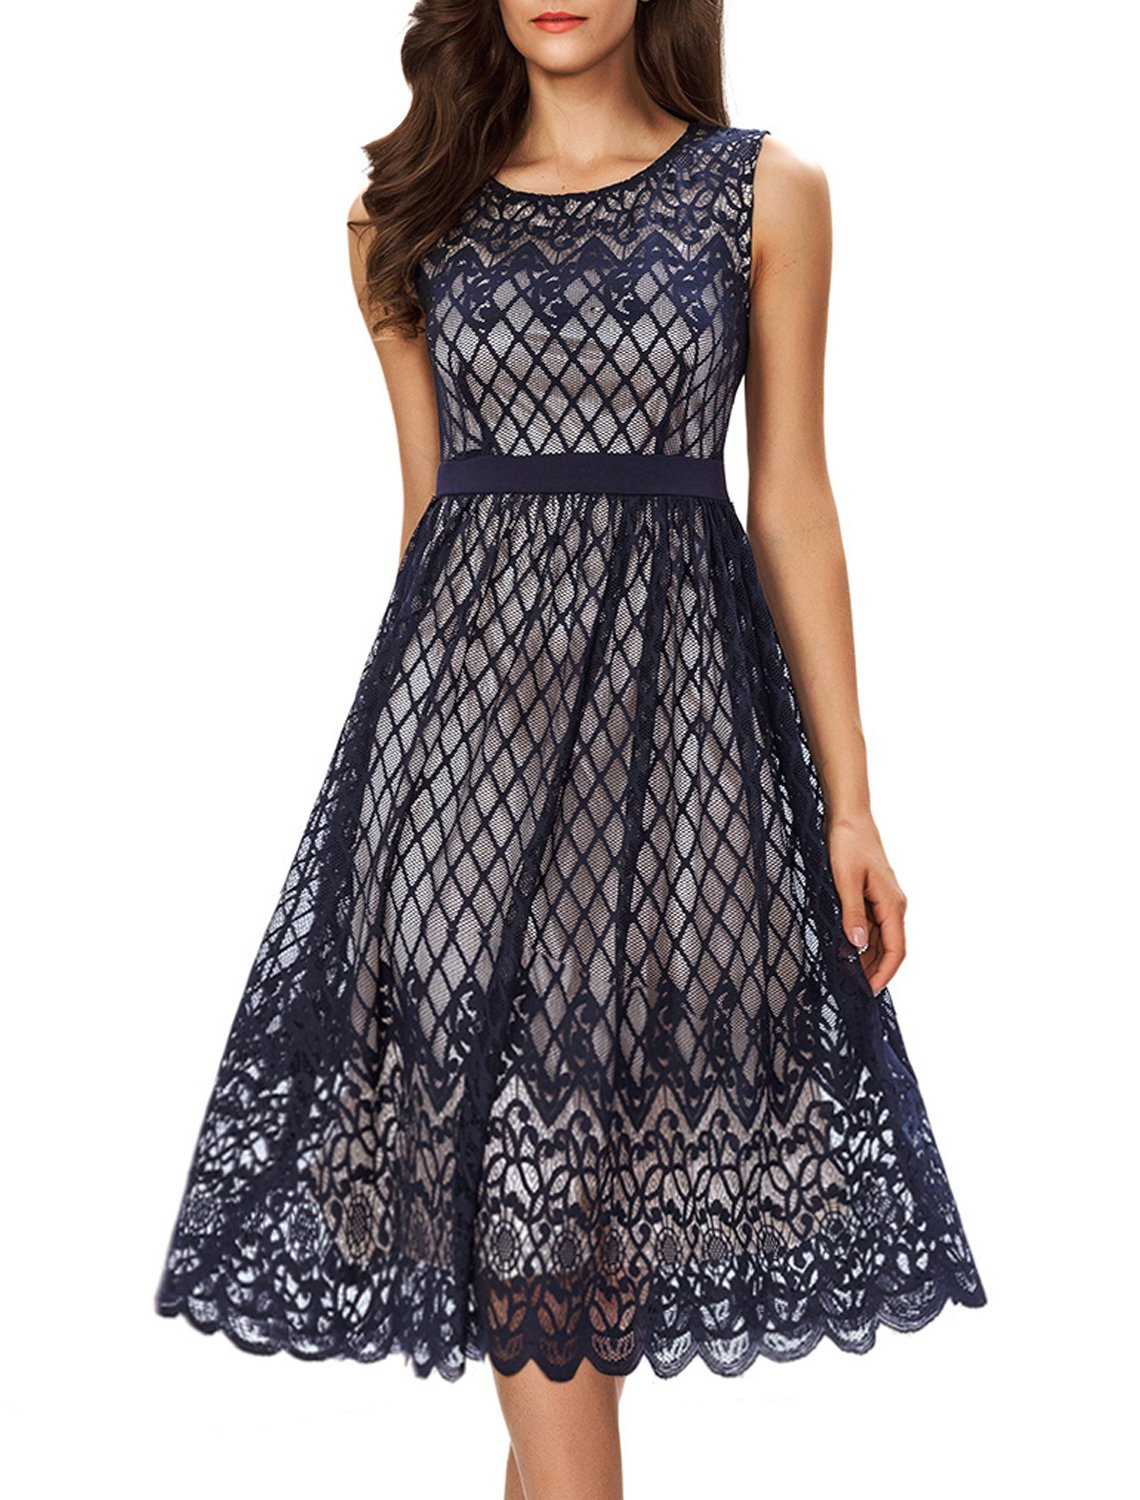 Noctflos Women's Cocktail Party Dress for Wedding Guest Midi Lace Sleeveless Swing Dress